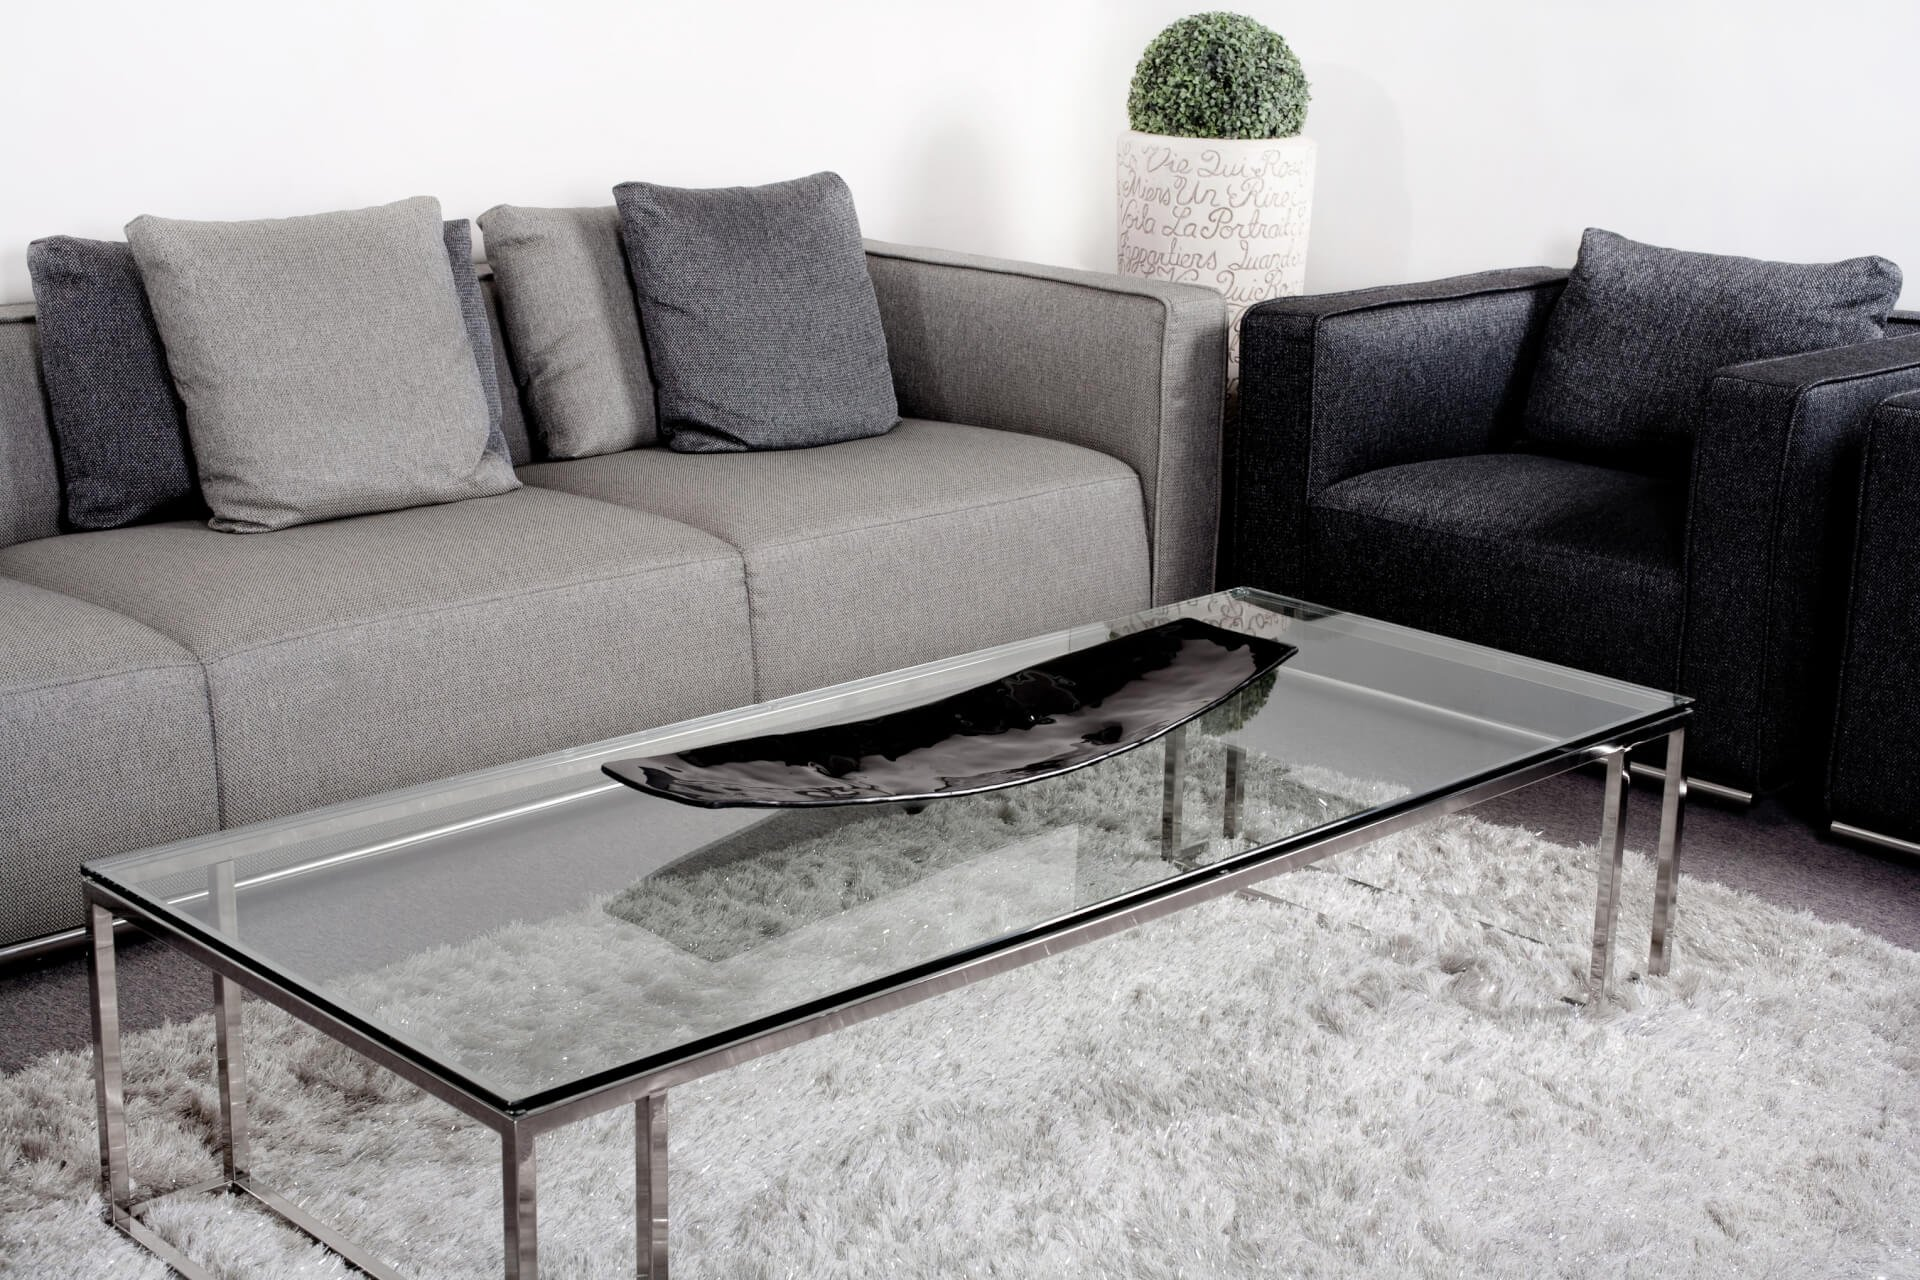 Aside From Being An Additional Protection For Your Furniture Gl Tabletops Can Make Table Ear